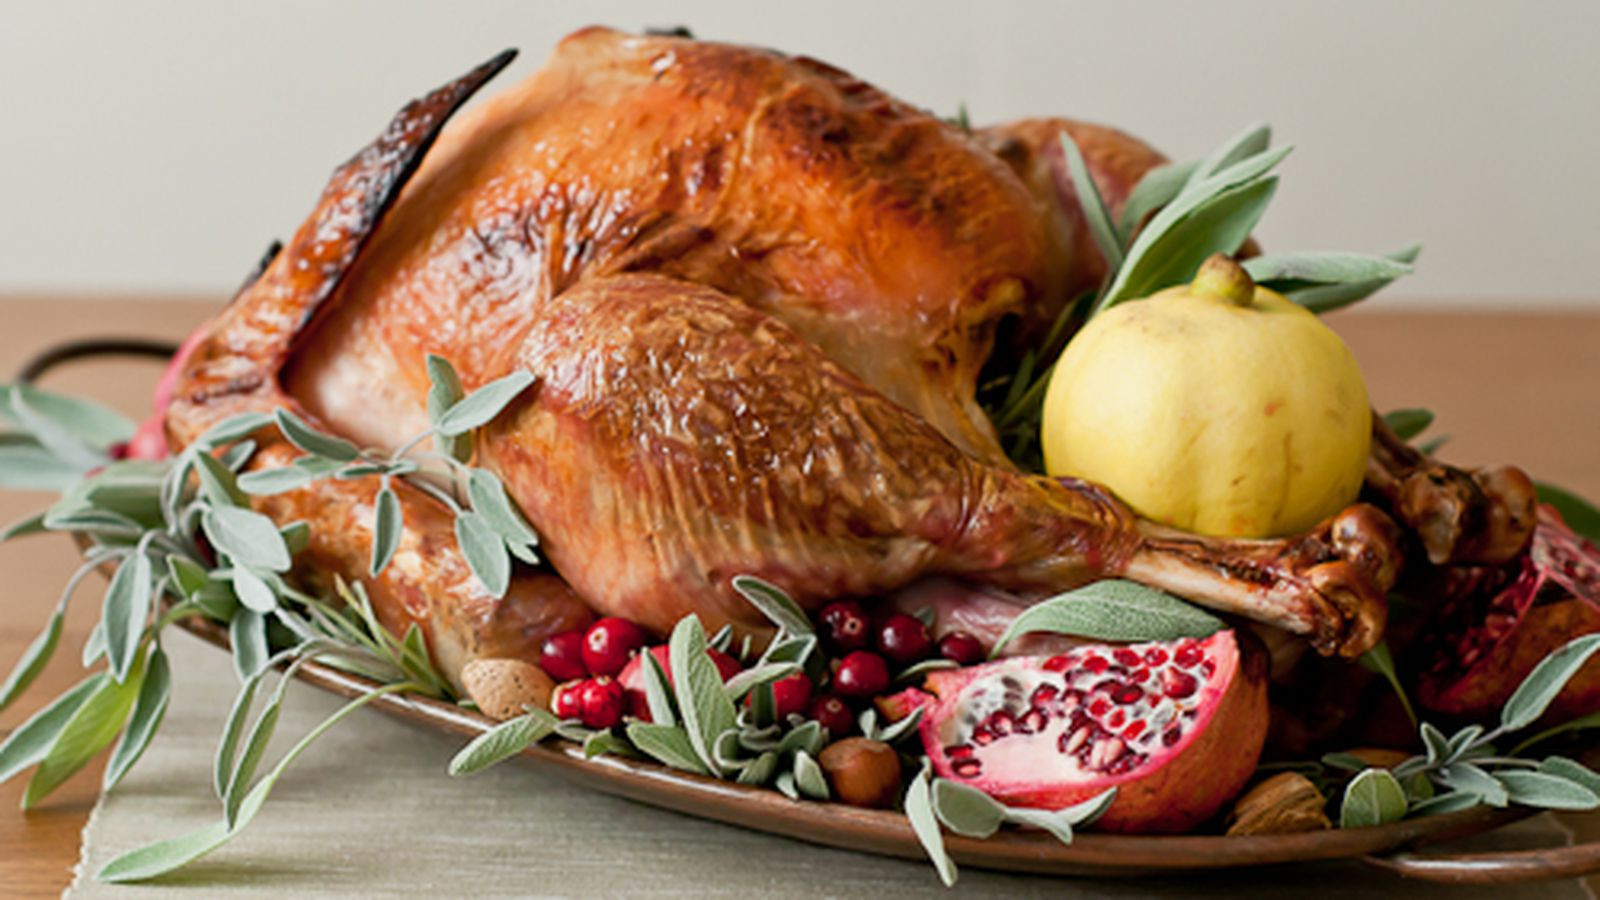 Best Turkey Brands To Buy For Thanksgiving  20 Places To Enjoy Thanksgiving Dinner In San Diego